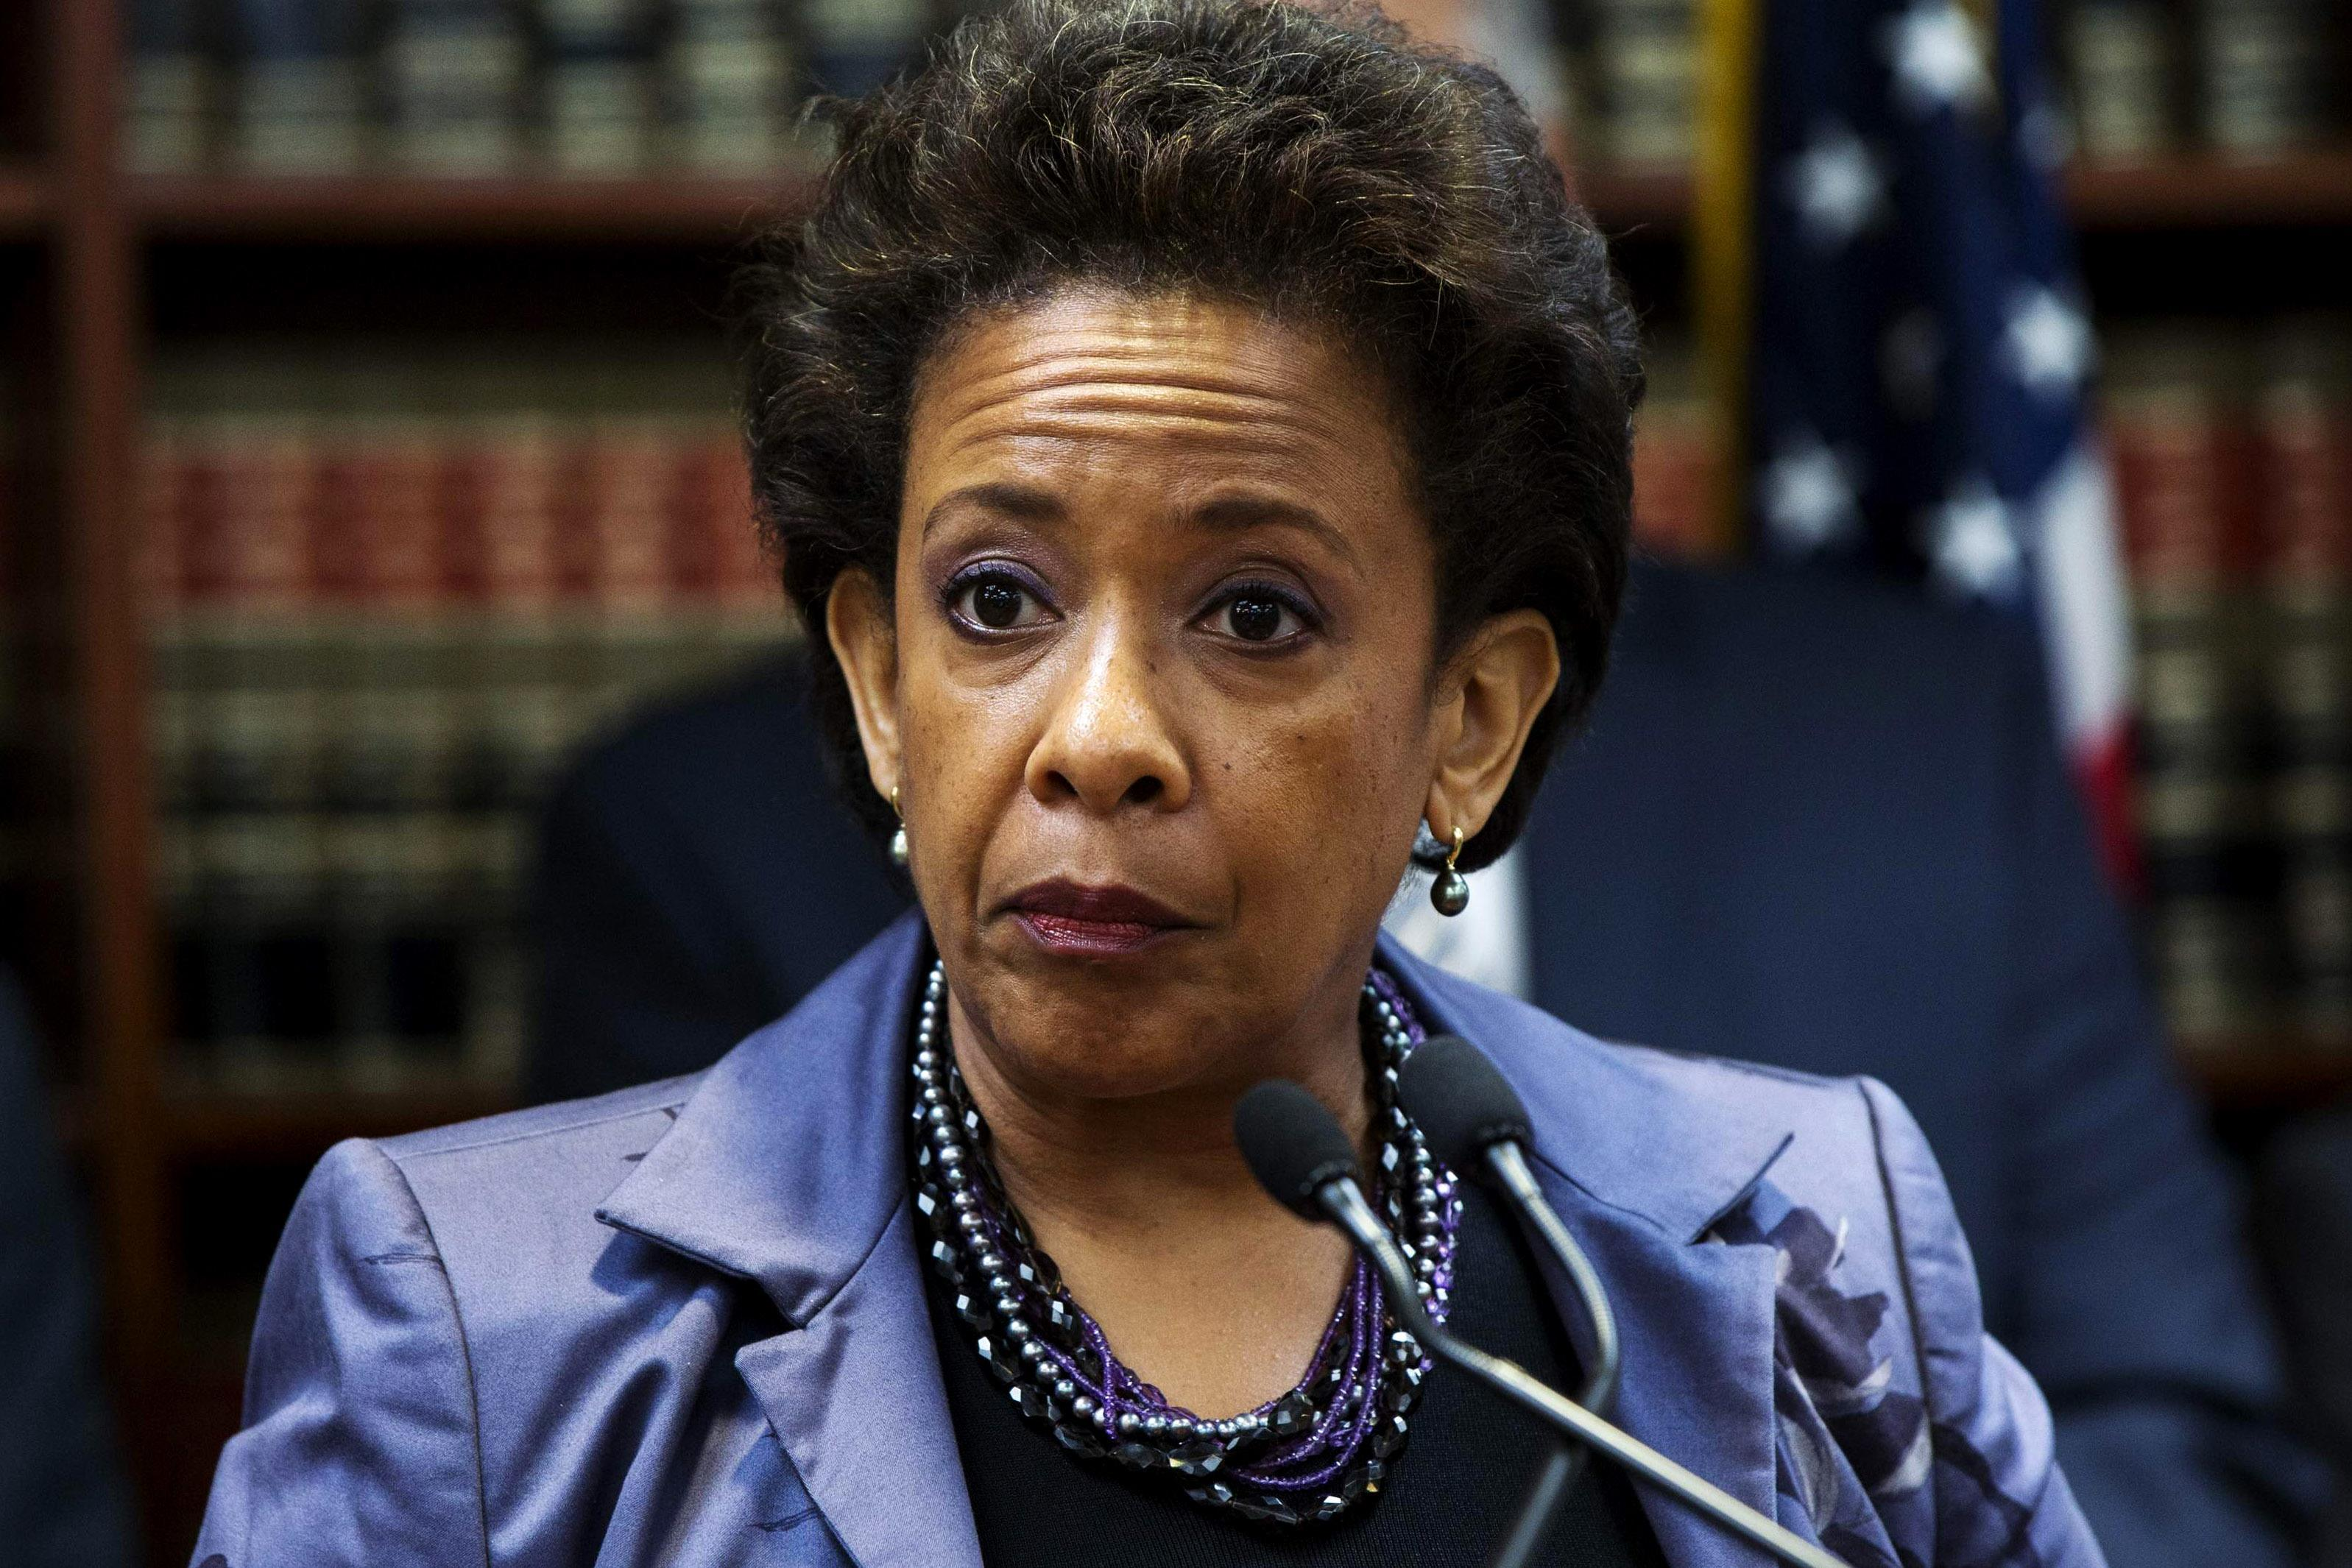 Good news for US iGaming as Loretta Lynch is confirmed as Attorney General.